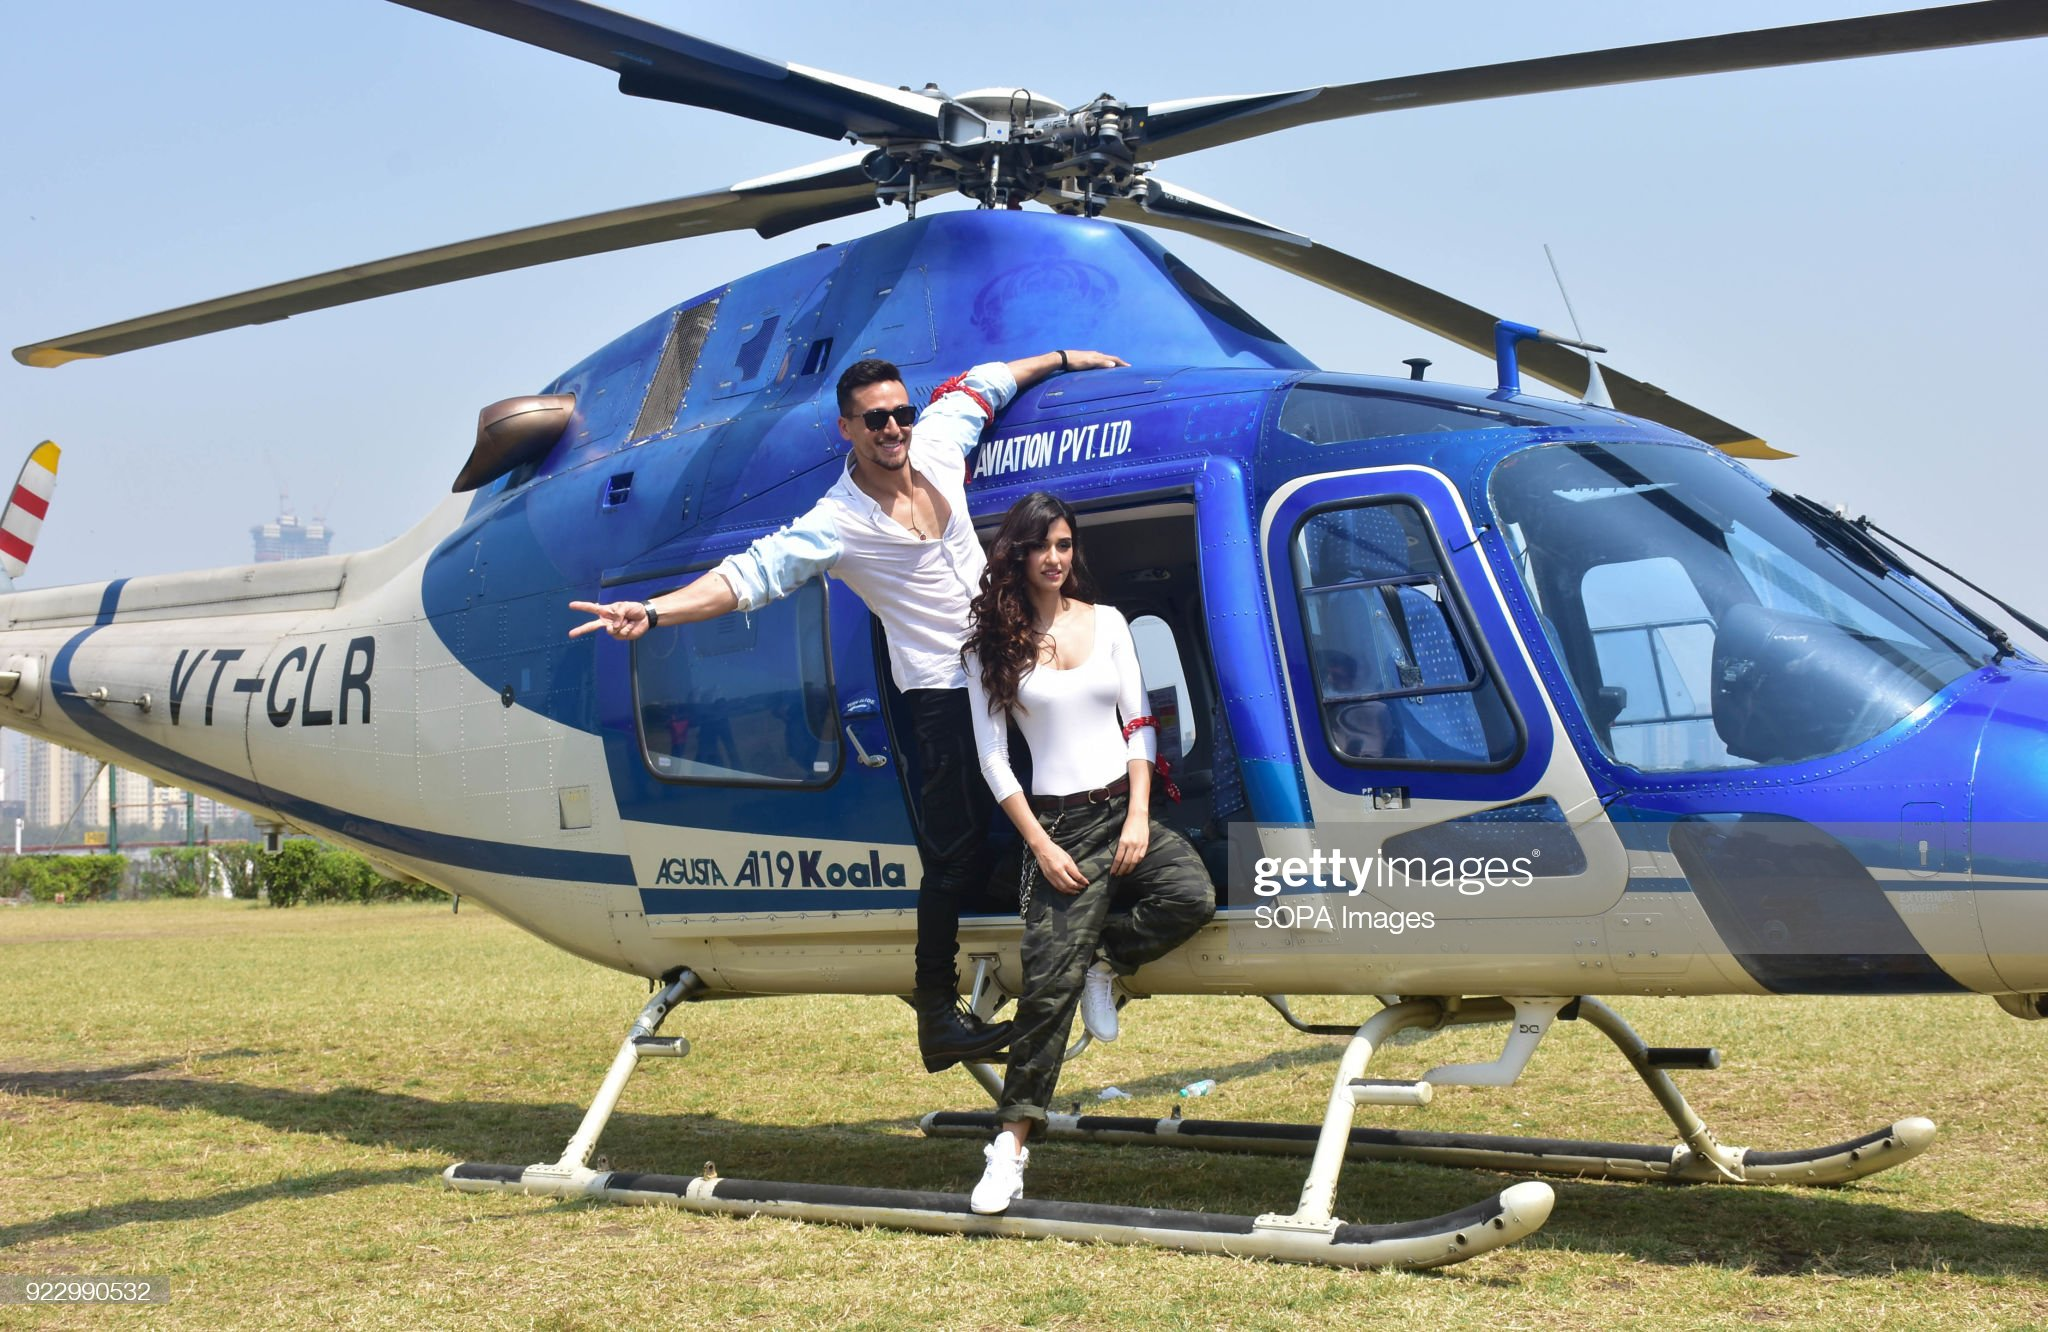 indian-film-actor-tiger-shroff-and-actress-disha-patani-take-an-ride-picture-id922990532